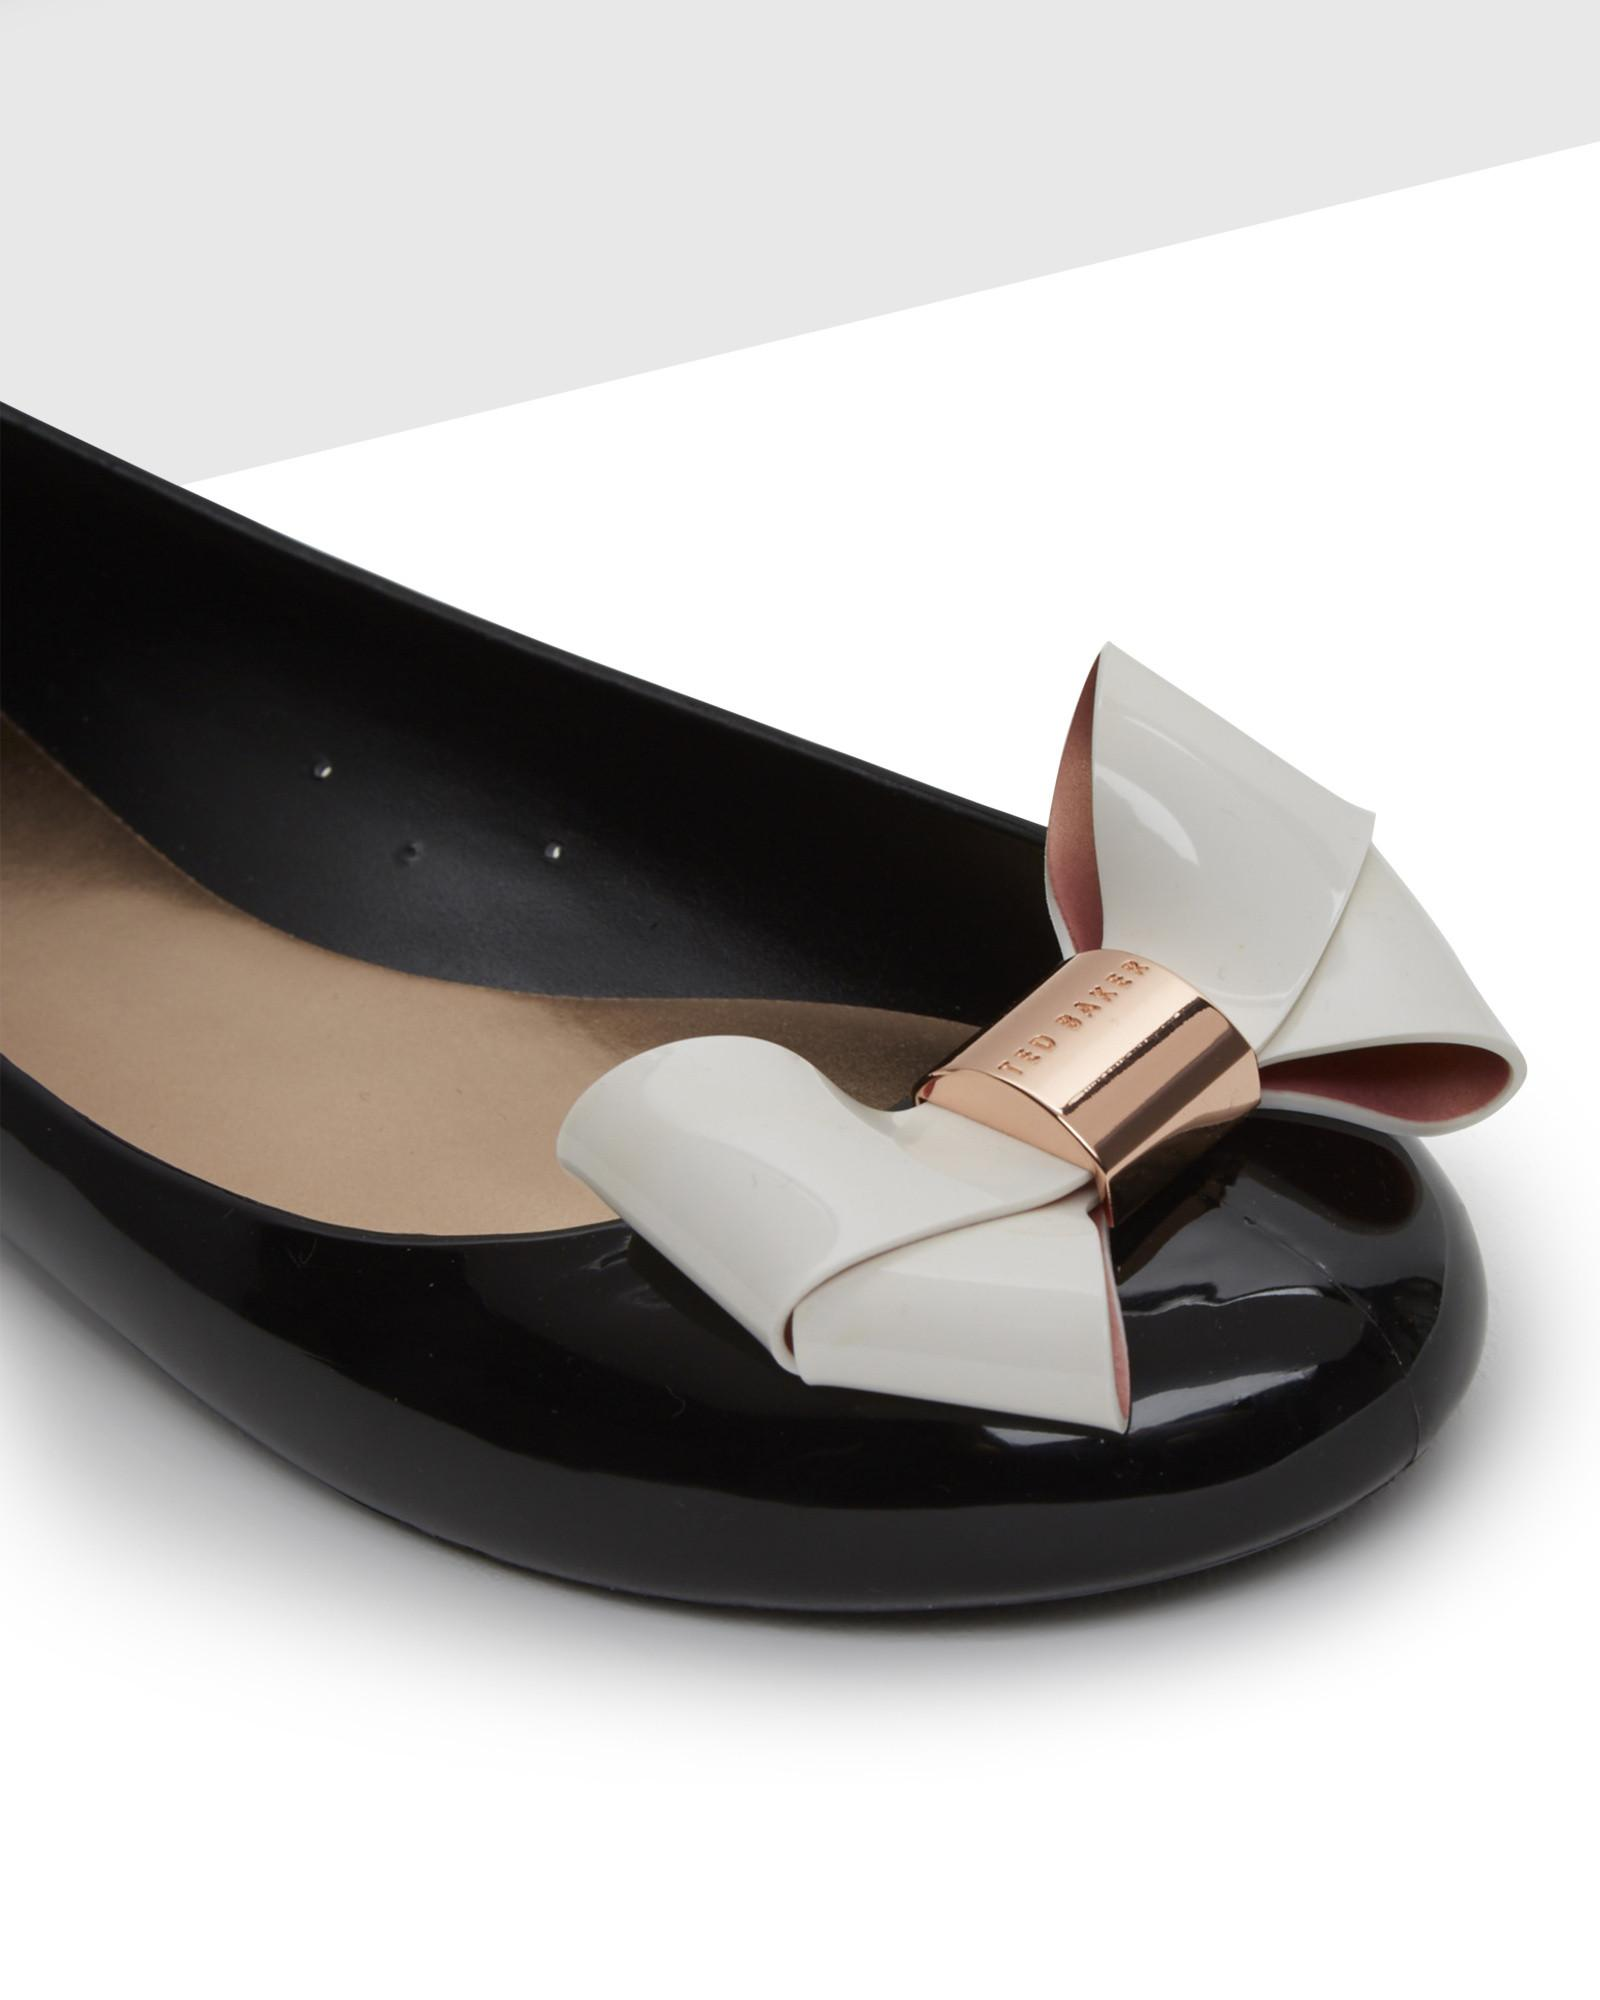 133decb5c6a19 Ted Baker Large Bow Jelly Pumps in Black - Lyst